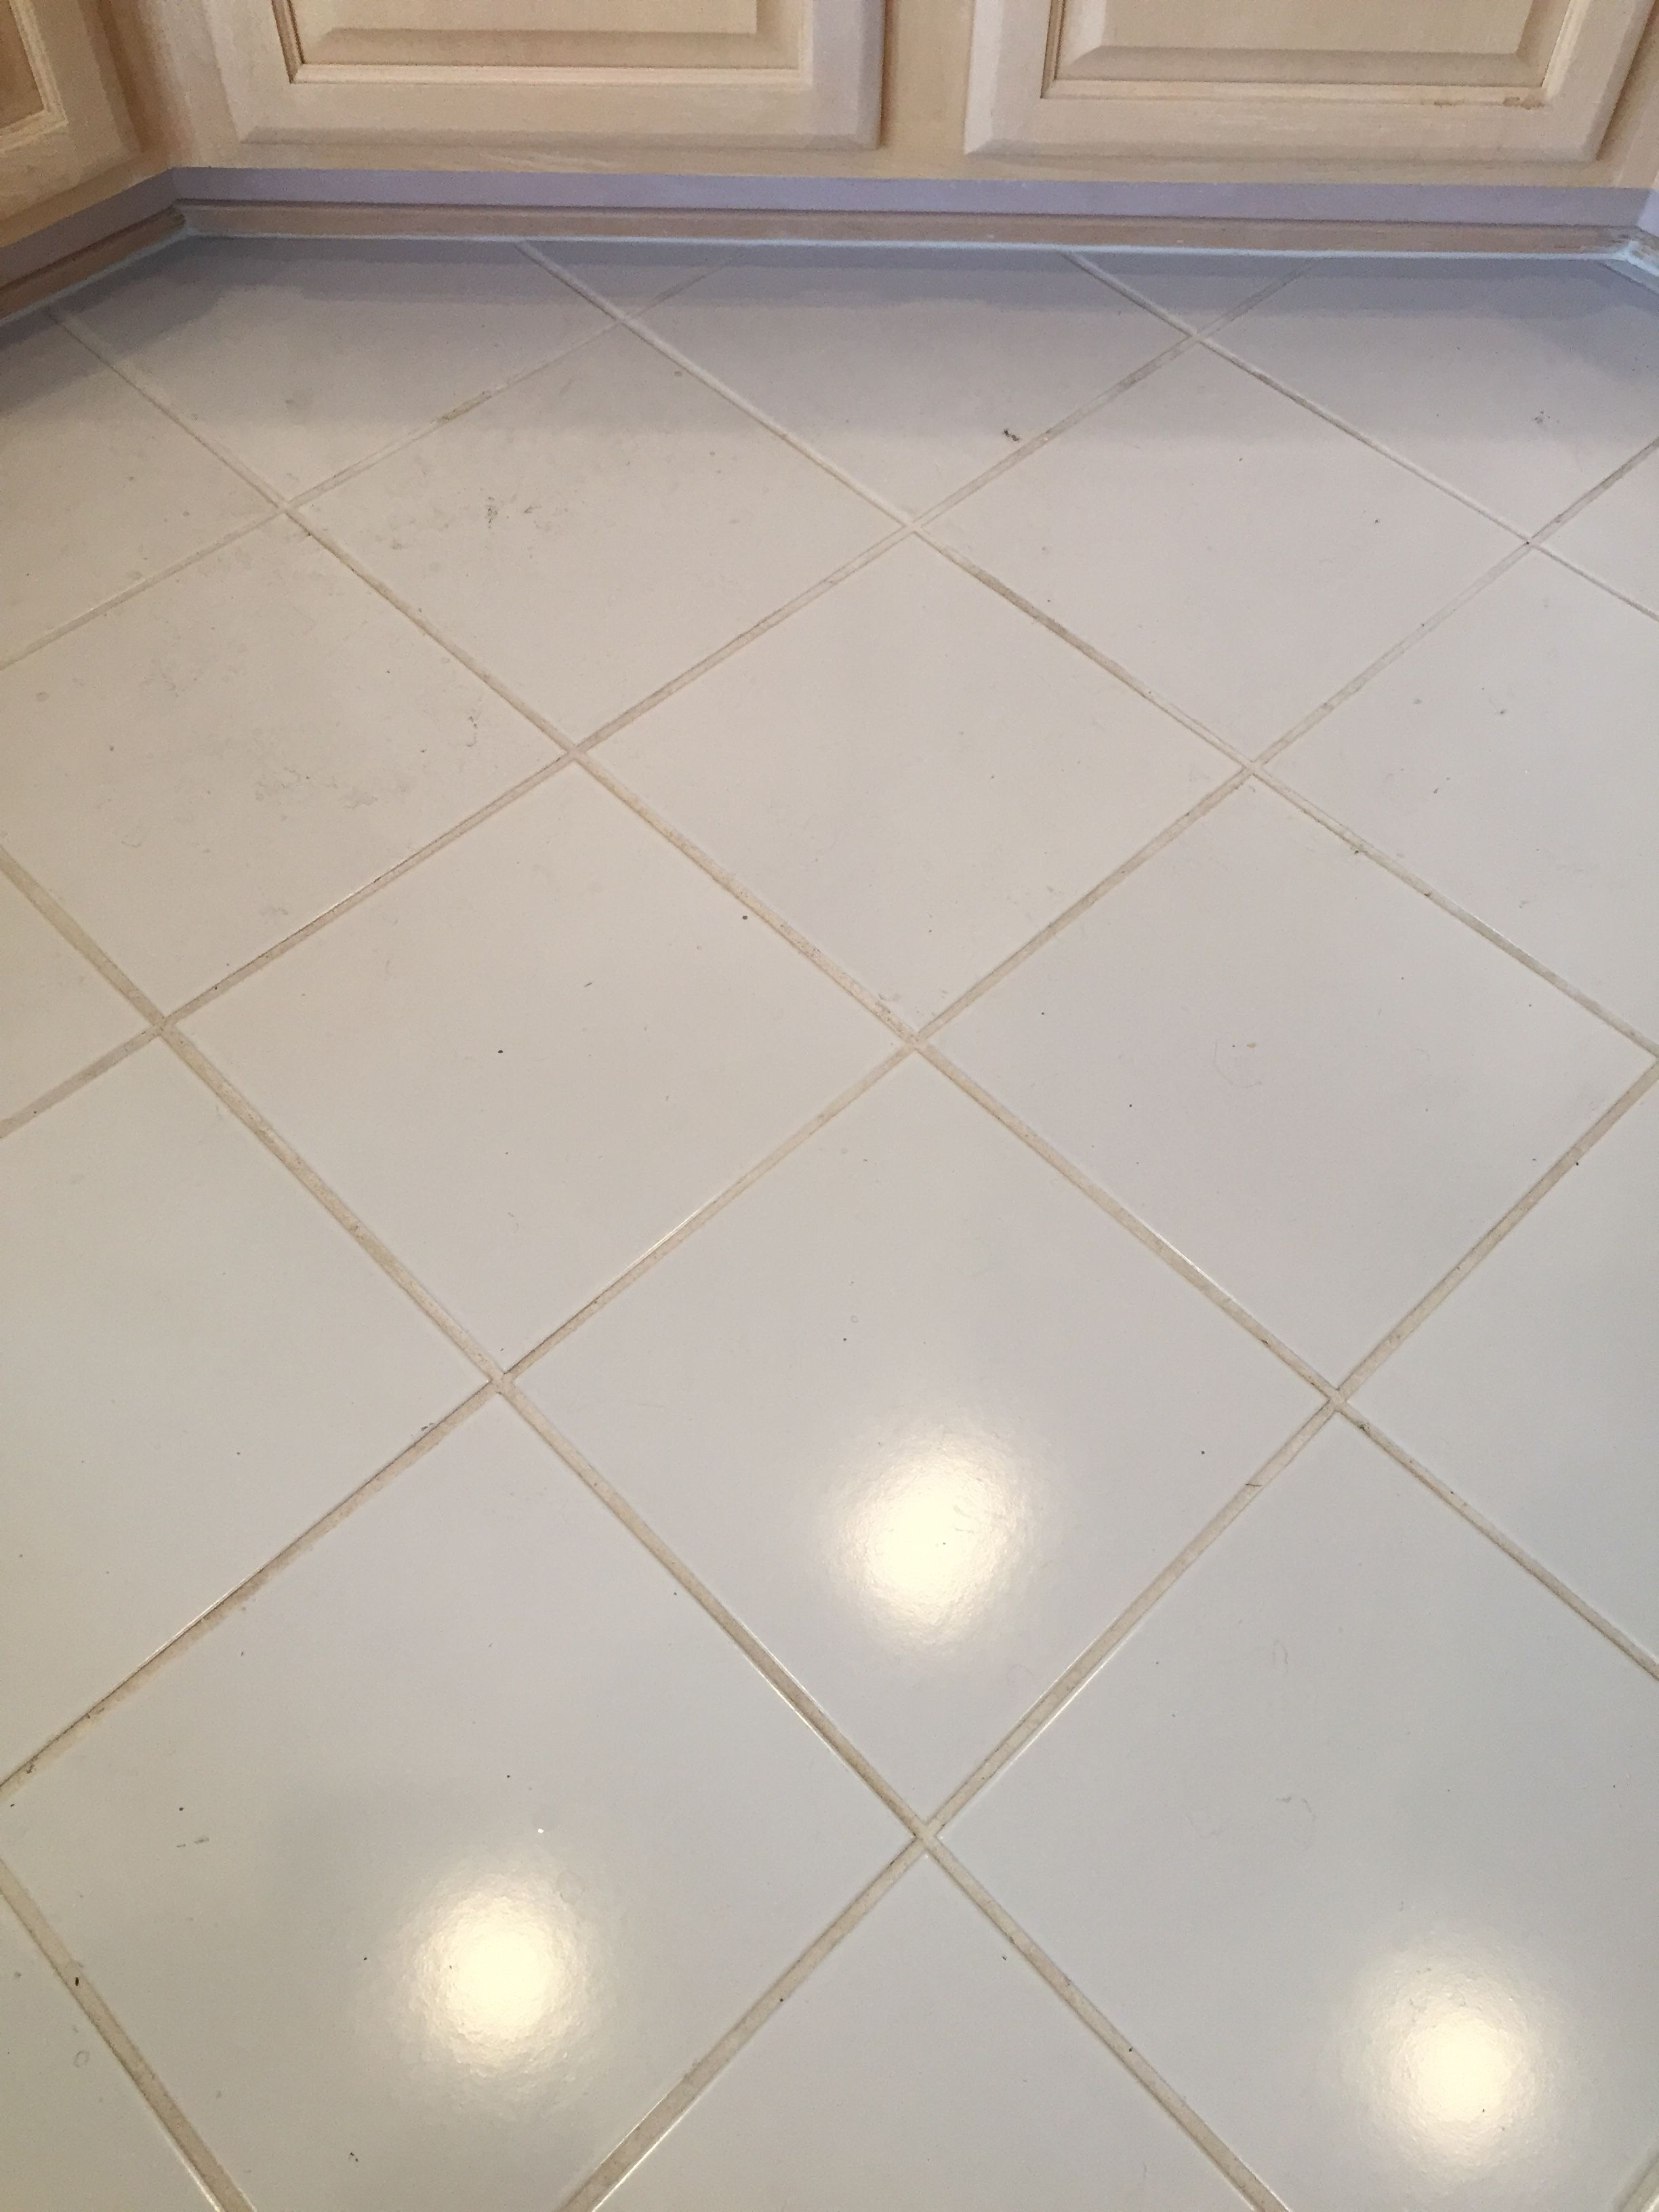 Sealing porcelain floor tiles before grouting httpnextsoft21 sealing porcelain floor tiles before grouting dailygadgetfo Choice Image